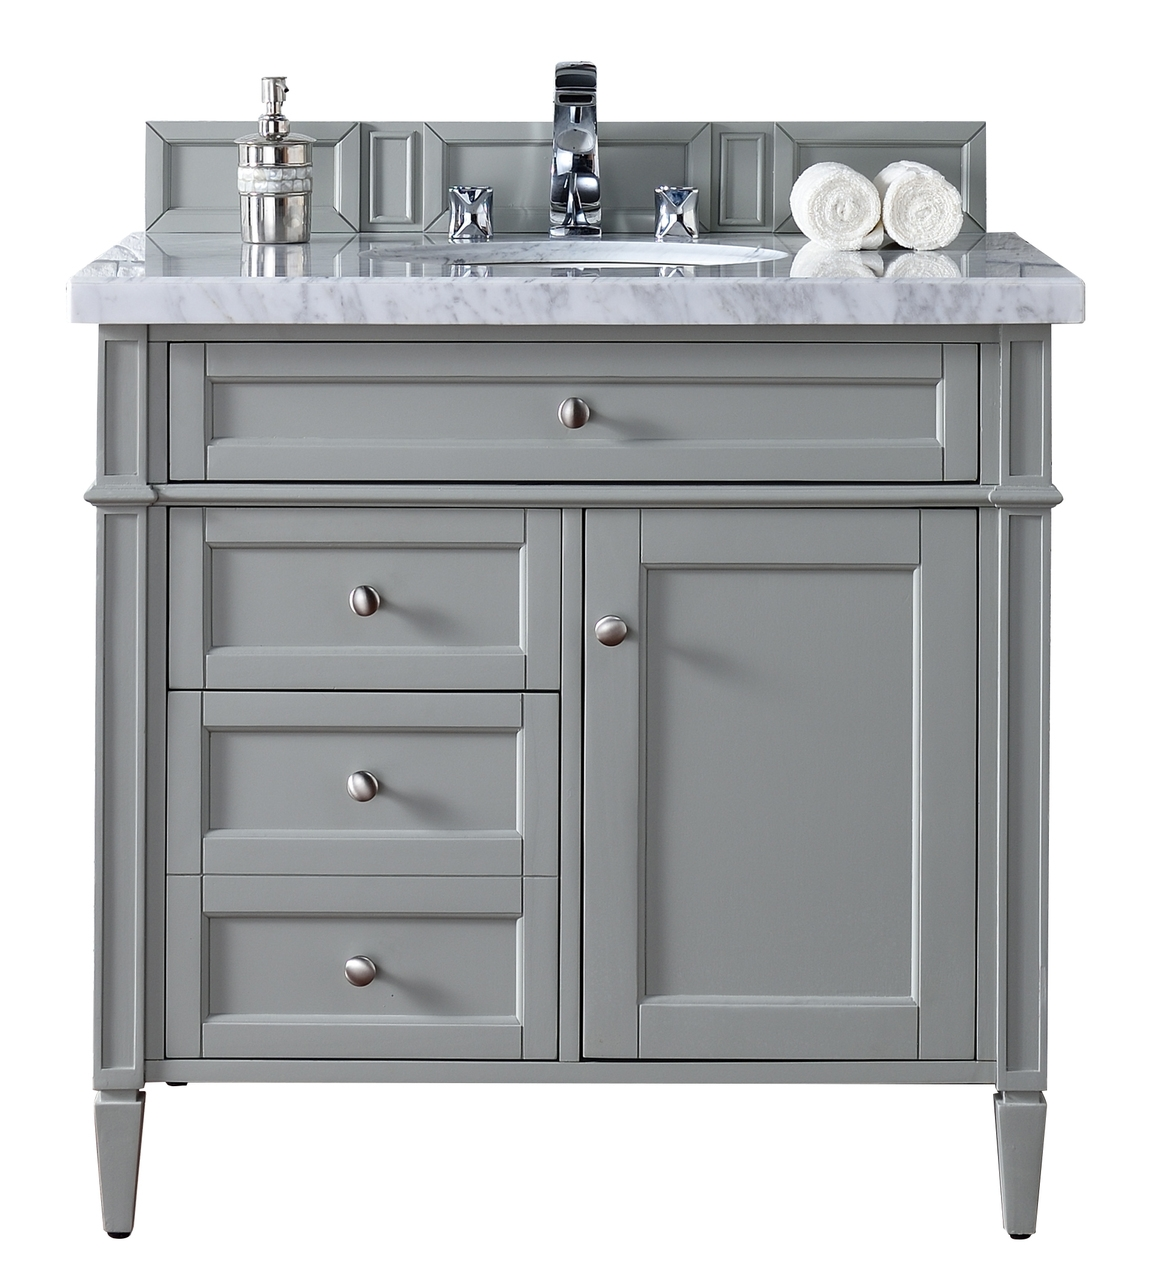 27 Inch Bathroom Vanity Cabinet With Drawers